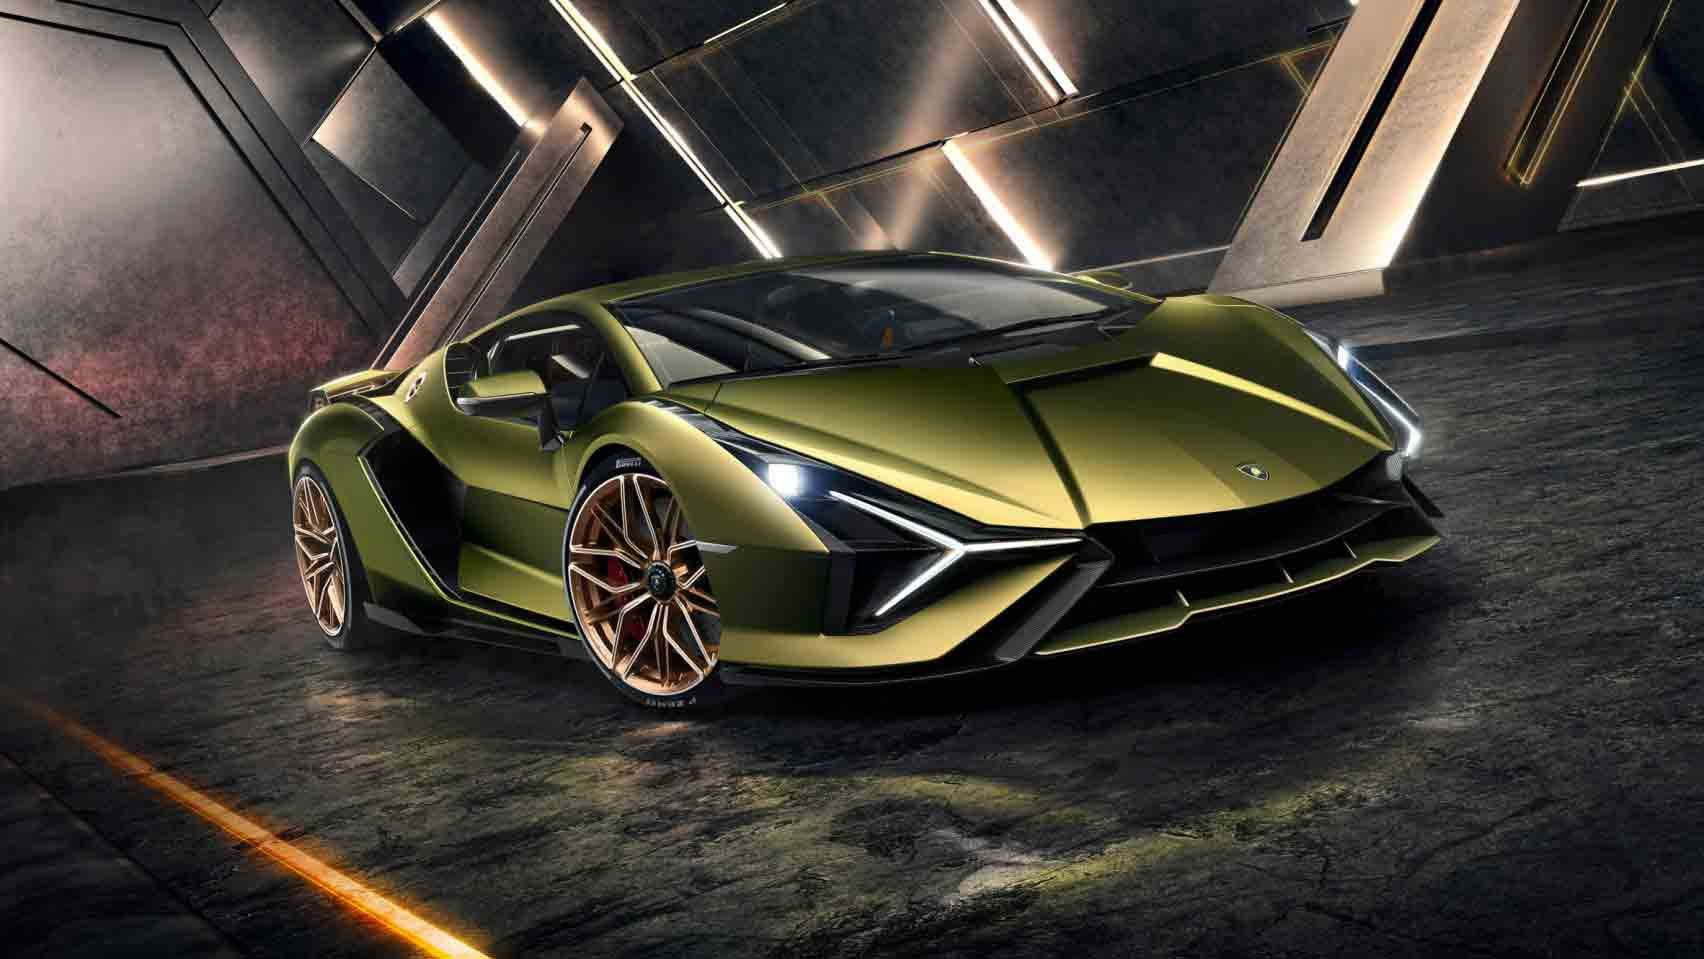 Lamborghini S First Hybrid Production Supercar Will Be Its Fastest Car Of All Time Super Sport Cars Hybrid Car Super Cars